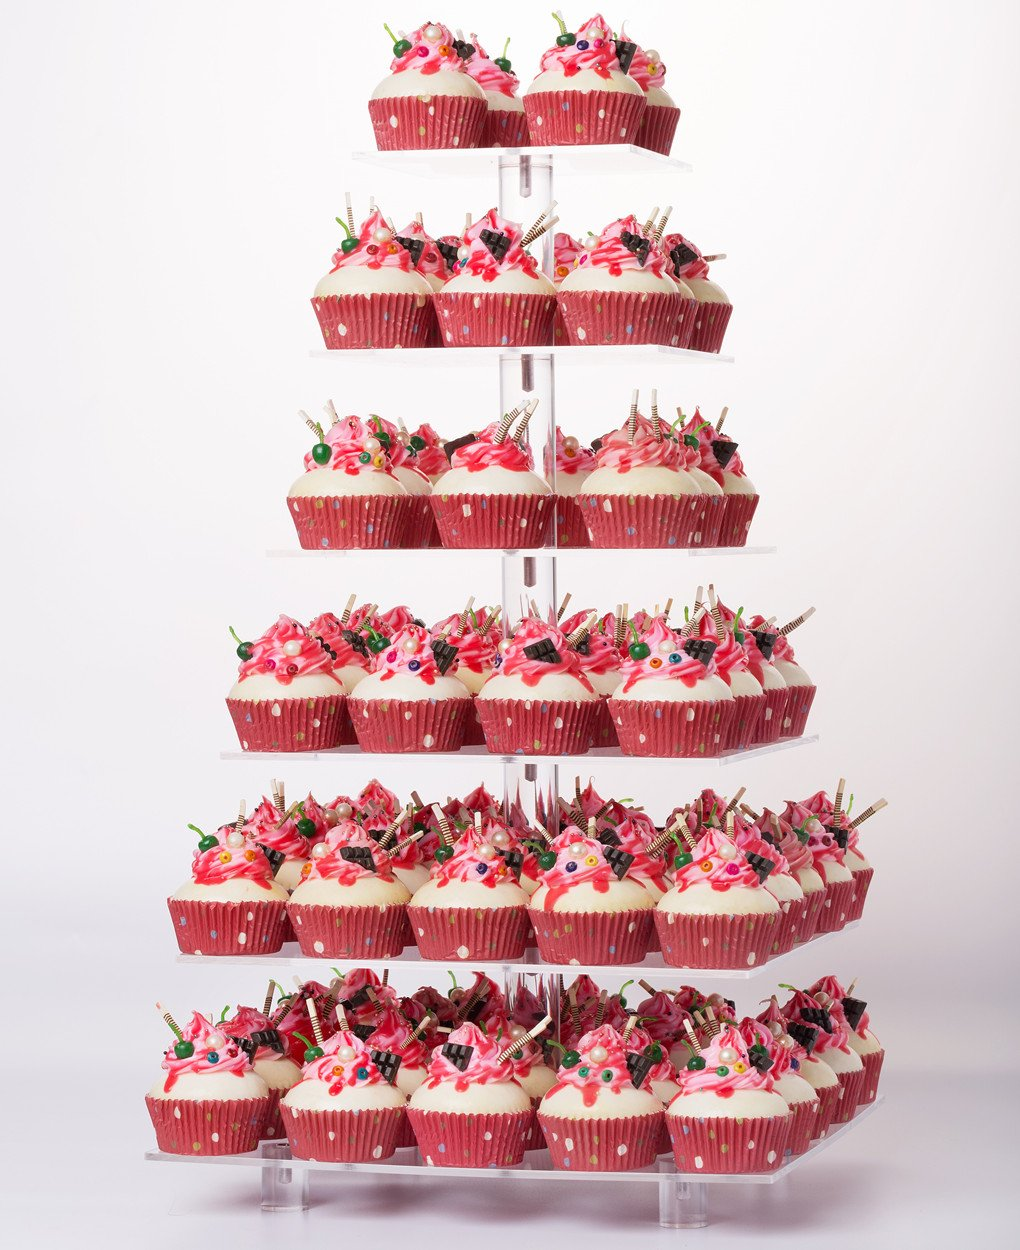 Buy 7 Tier Square Acrylic Cupcake Stand Tower Wedding Cake Stand ...